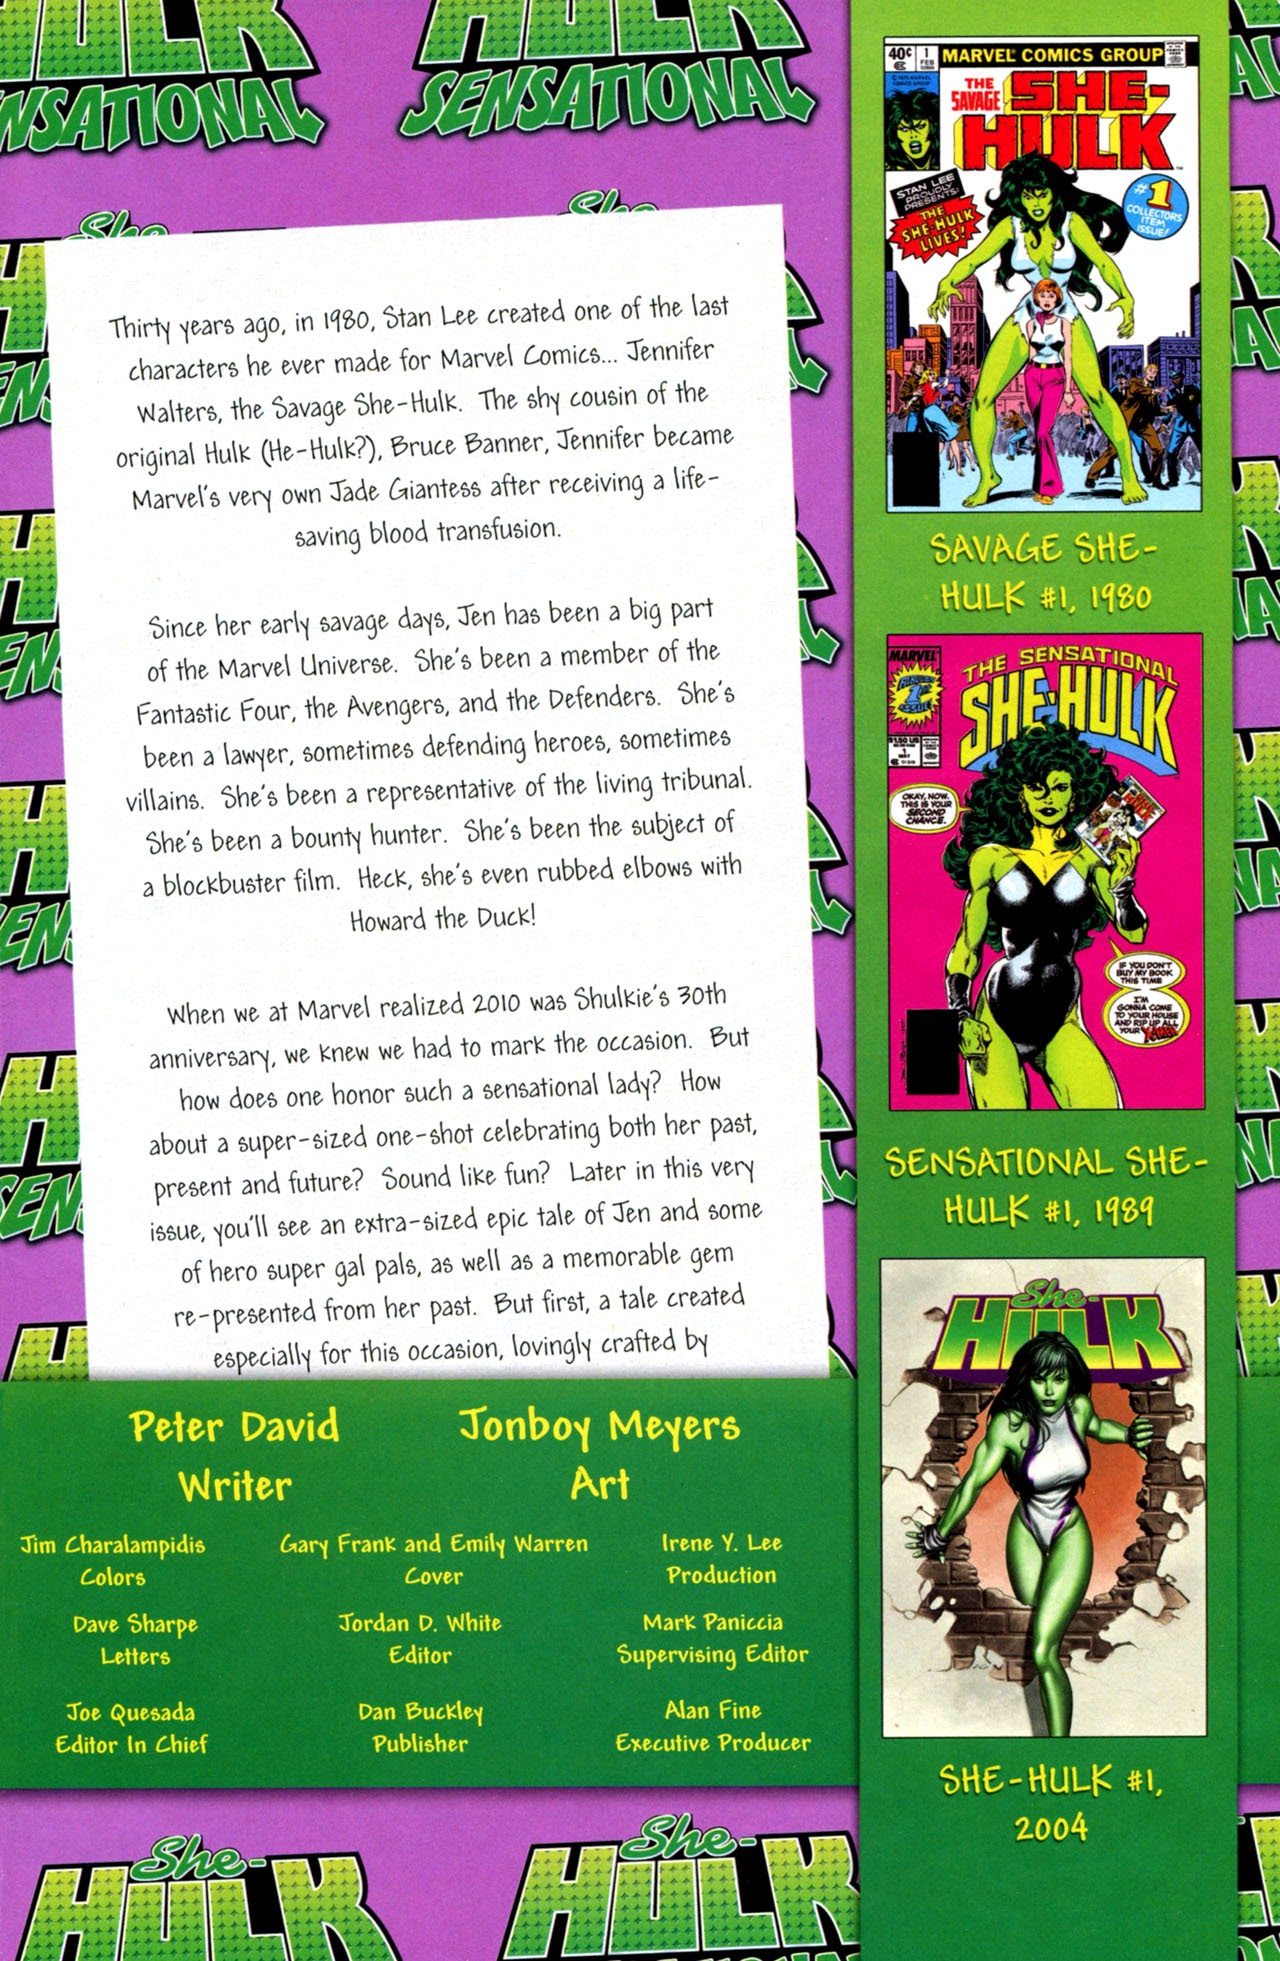 scans_daily | She-Hulk #12 (final issue) - Final Verdict